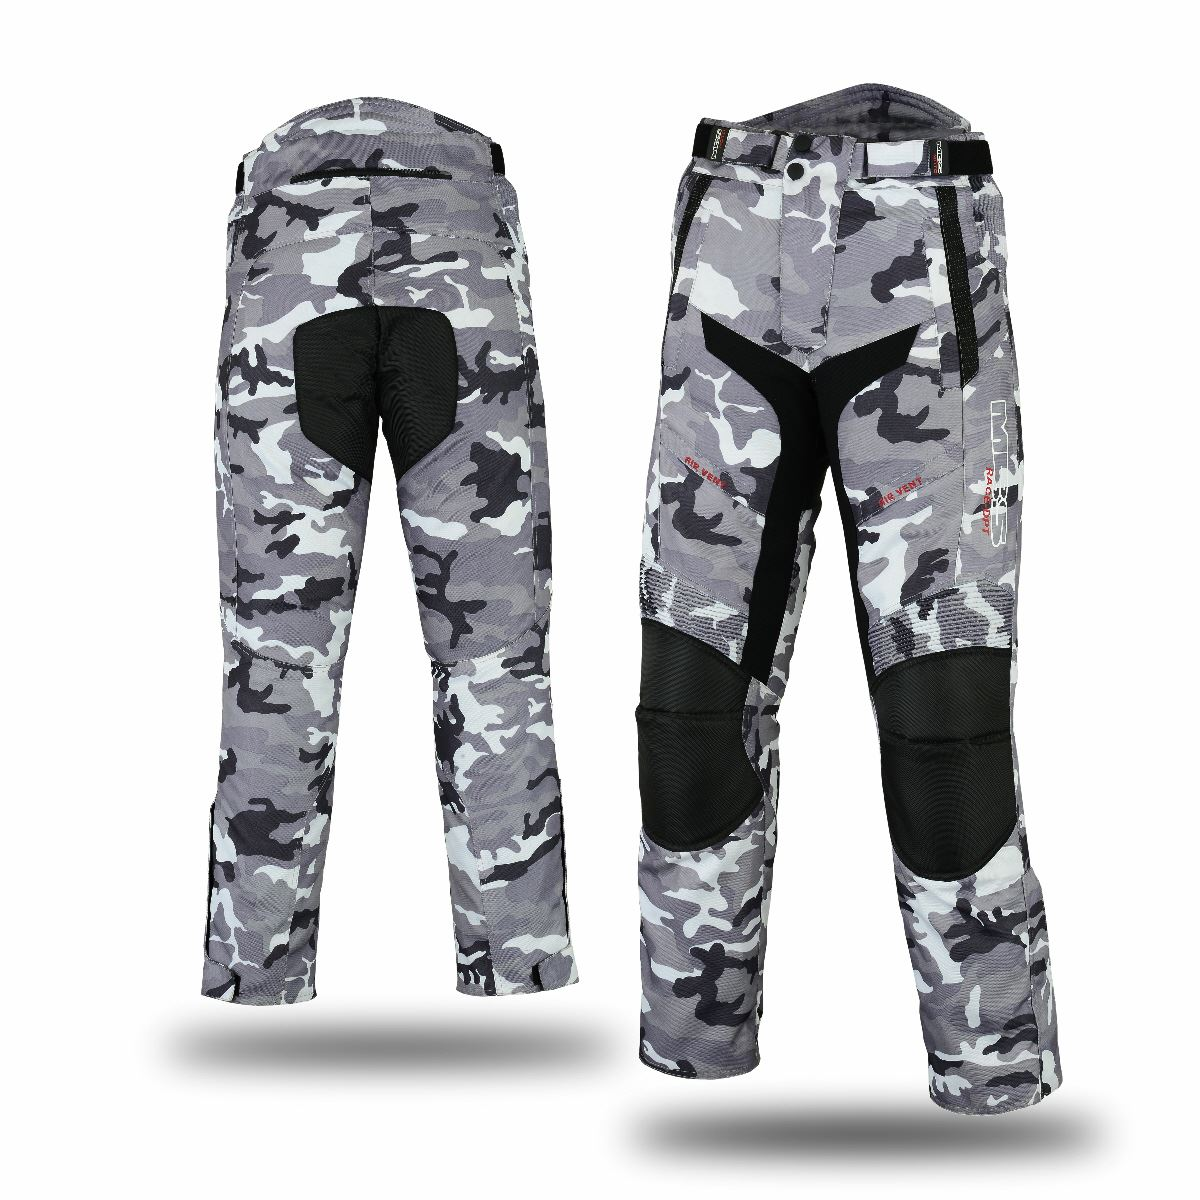 MBSmoto-MP-51-Motorbike-Motorcycle-Textile-Touring-Waterproof-Trouser-Pant